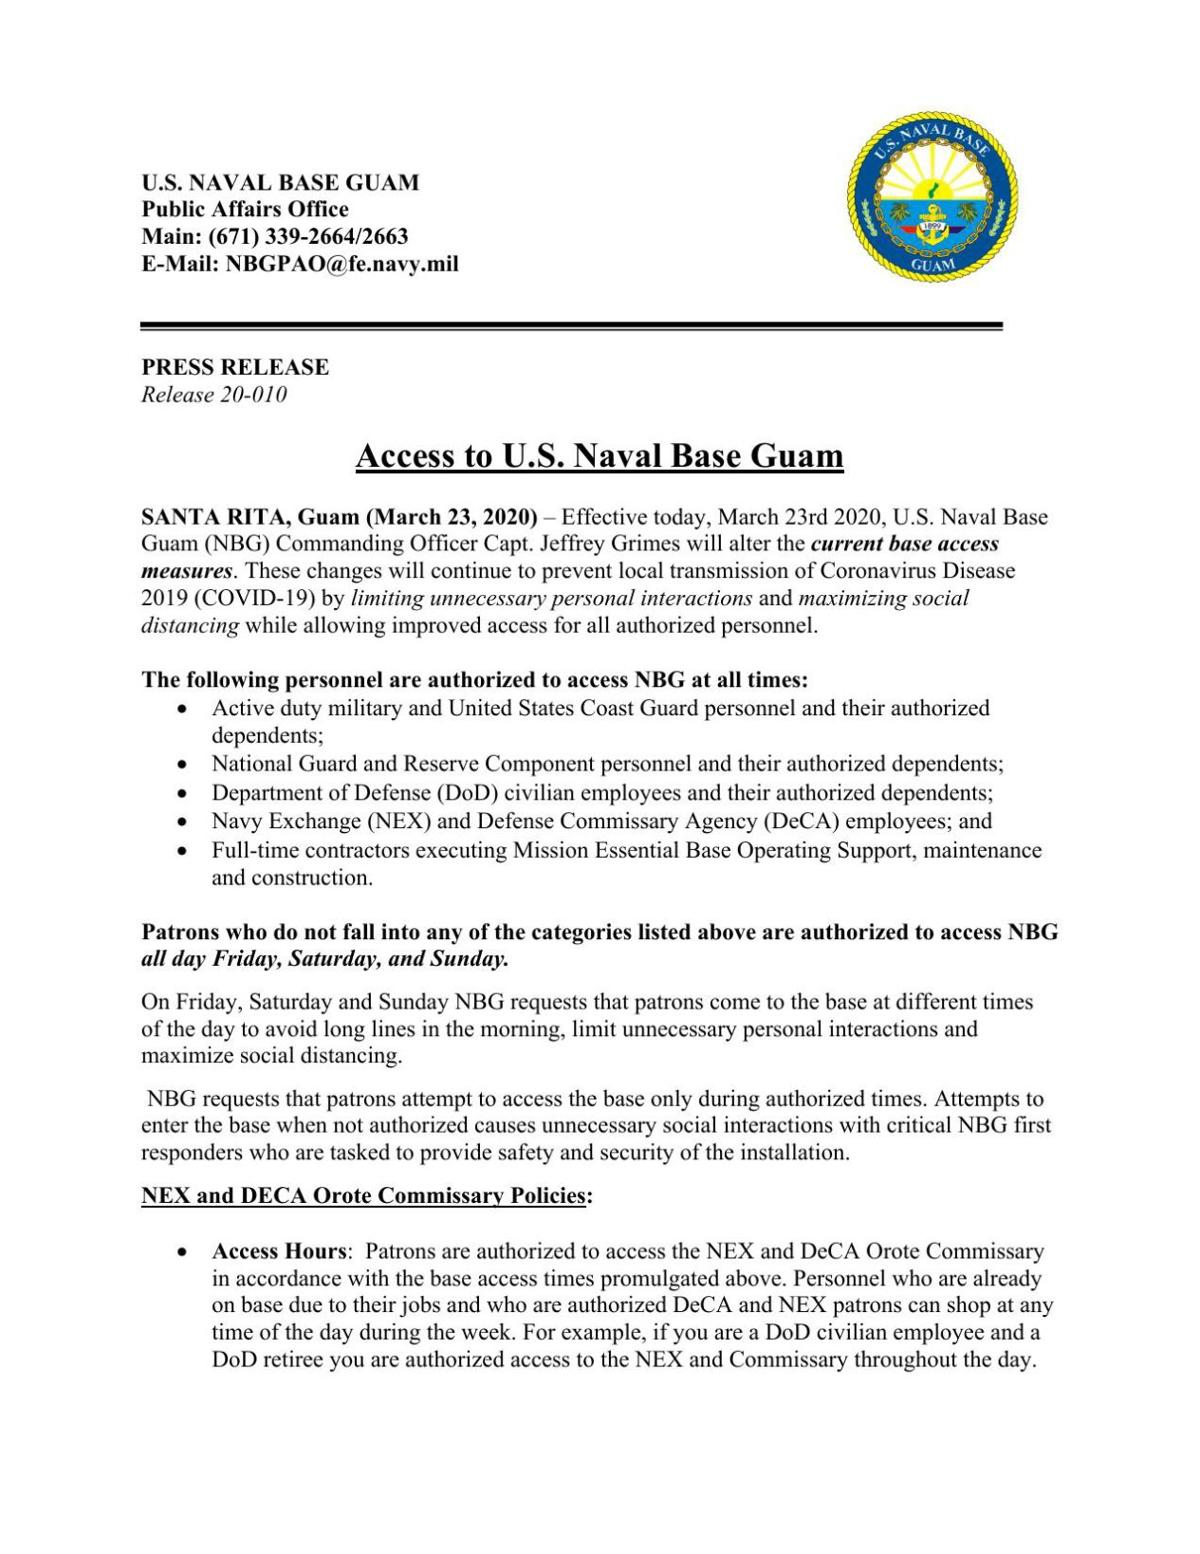 Access to Naval Base Press Release